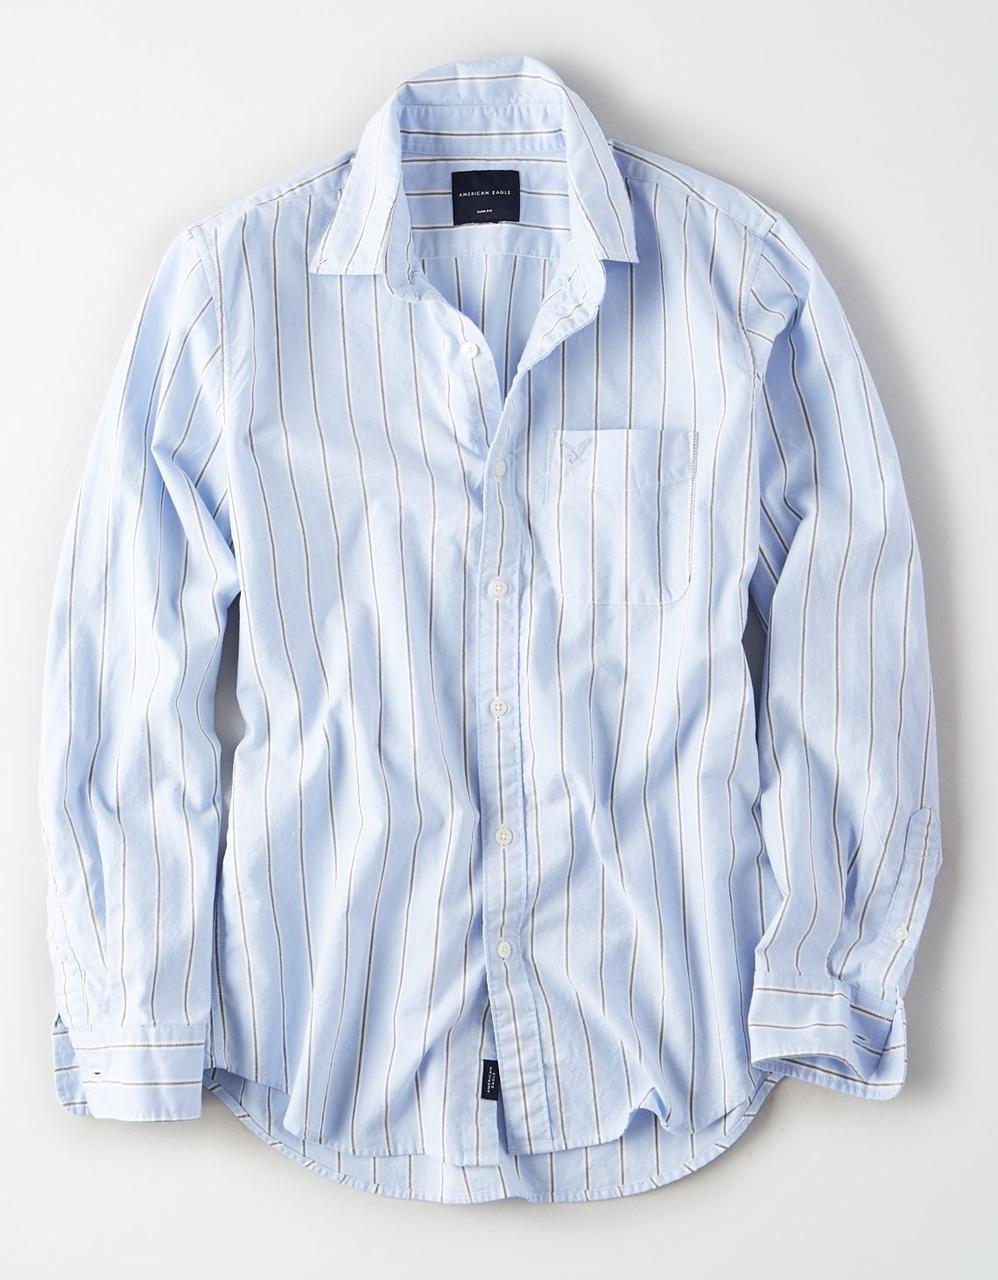 d3a2152f8c27 American Eagle Shirts, AE LONG SLEEVE OXFORD BUTTON DOWN SHIRT for ...